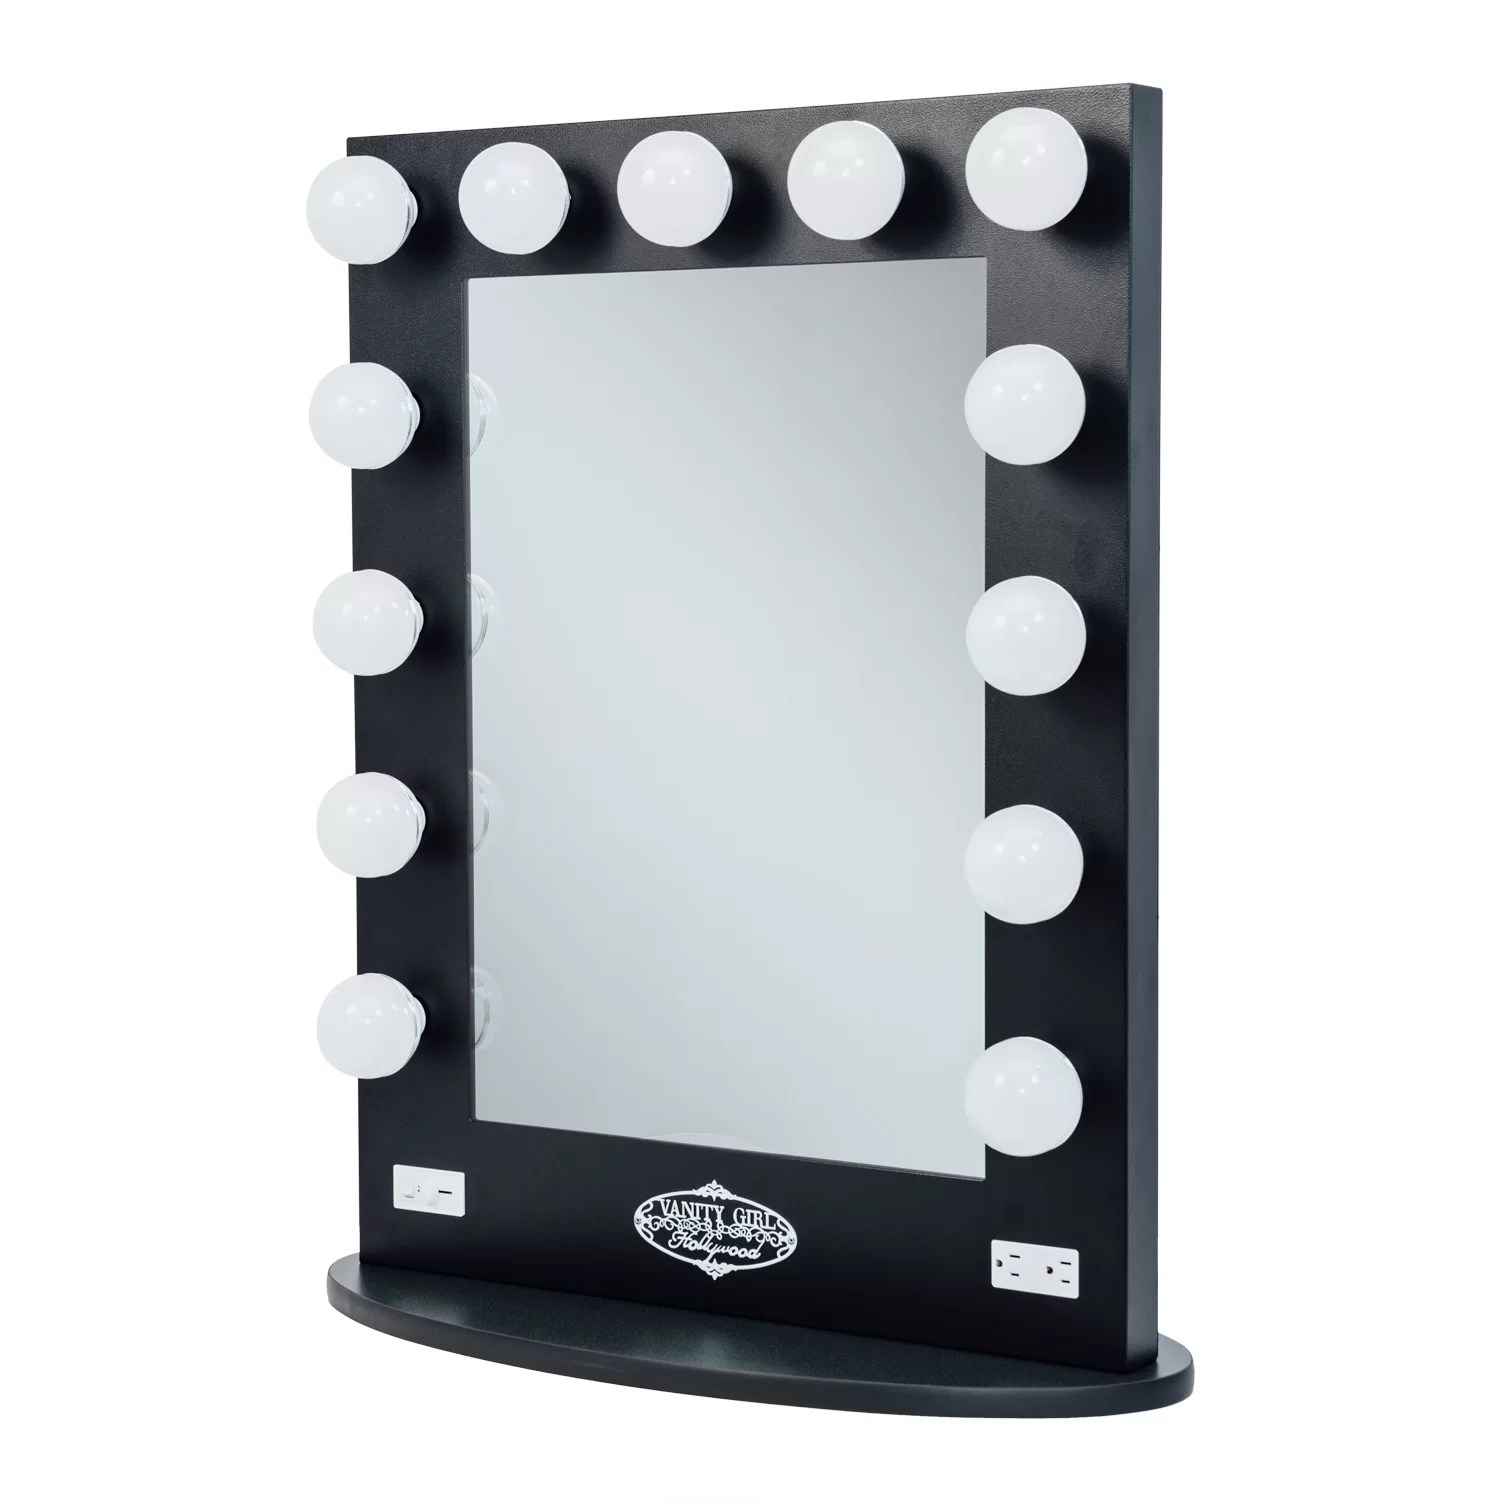 Vanity Mirrors Vanity Girl Hollywood Broadway Lighted Vanity Mirror